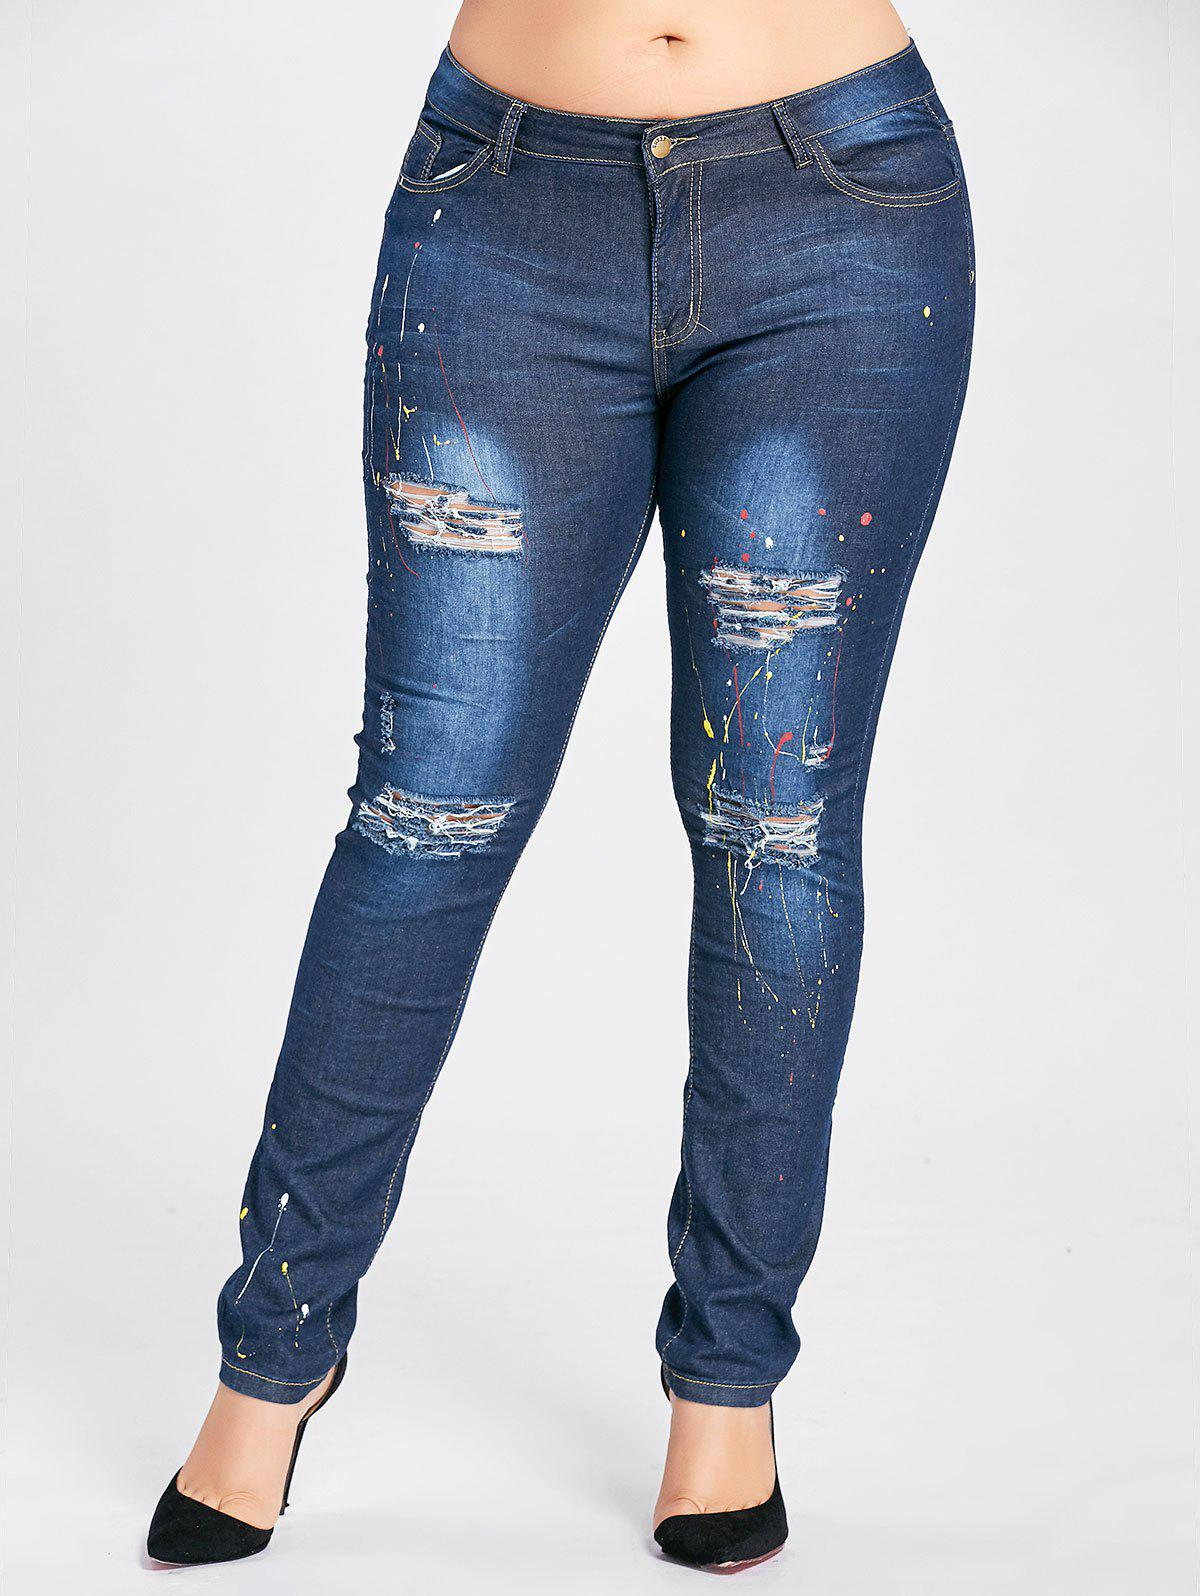 Plus Size Splash Ripped High Waist Jeans - CERULEAN 3XL